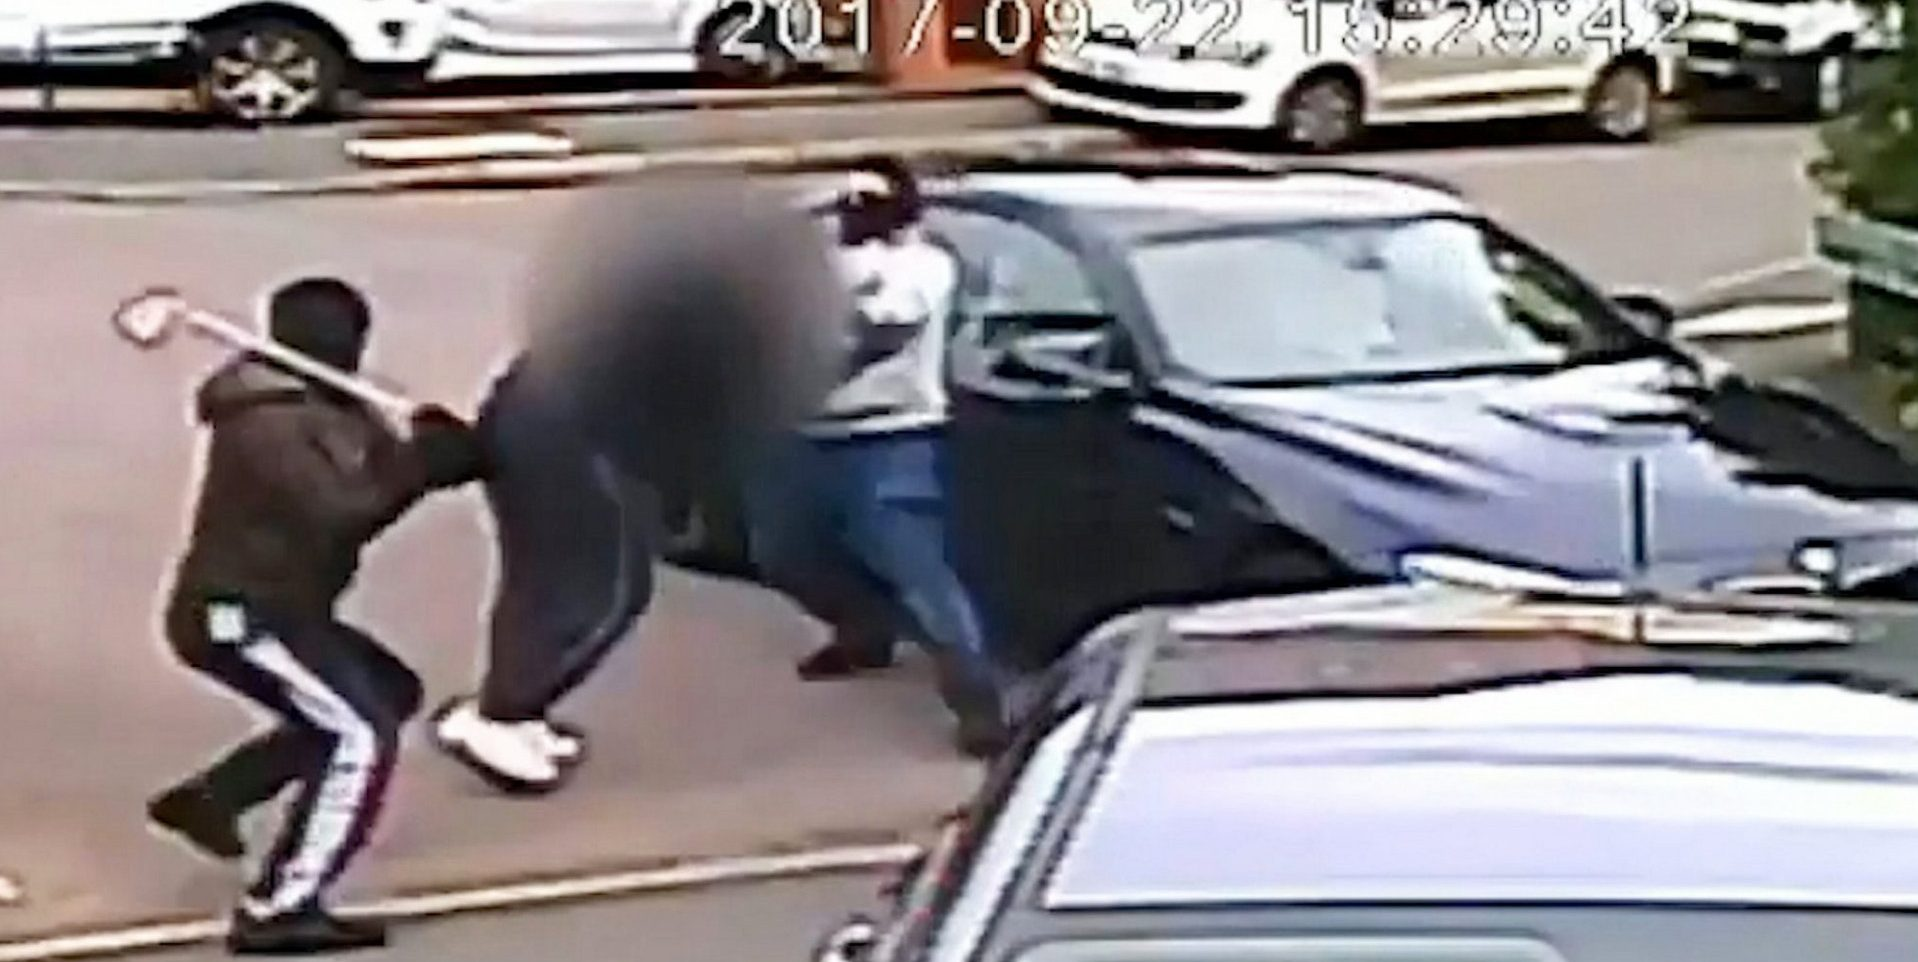 Sarweeth Rehman and Hussun Ashraf during a BMW carjacking in Shirley, West Midlands, in September 2017. See SWNS story SWMDcarjack. Two bungling carjackers have been jailed after a cop chased one of them as he made his getaway in a tow truck ? with a top speed of just 20MPH. Sarweeth Rehman and Hussun Ashraf, both 22, were behind a string of violent robbers, targeting high-performance cars. Many of the thefts were captured on CCTV showing them attacking motorists with golf clubs, baseball bats and metal bars before speeding away. They were finally caught when an eagle-eyed off-duty police officer spotted Ashraf towing a BMW away at night and became suspicious. He followed the tow truck as it weaved its way along narrow side streets at just 20mph. Ashraf tried to flee on foot but were arrested and officers discovered they were responsible for a string of violent carjackings. The pair, both of Birmingham, admitted conspiracy to rob and conspiracy to steal motor vehicles and two counts of assault with intent to rob. Ashraf was jailed for six years four months while Rehman was sentenced to six years at Birmingham Crown Court today (23/10).